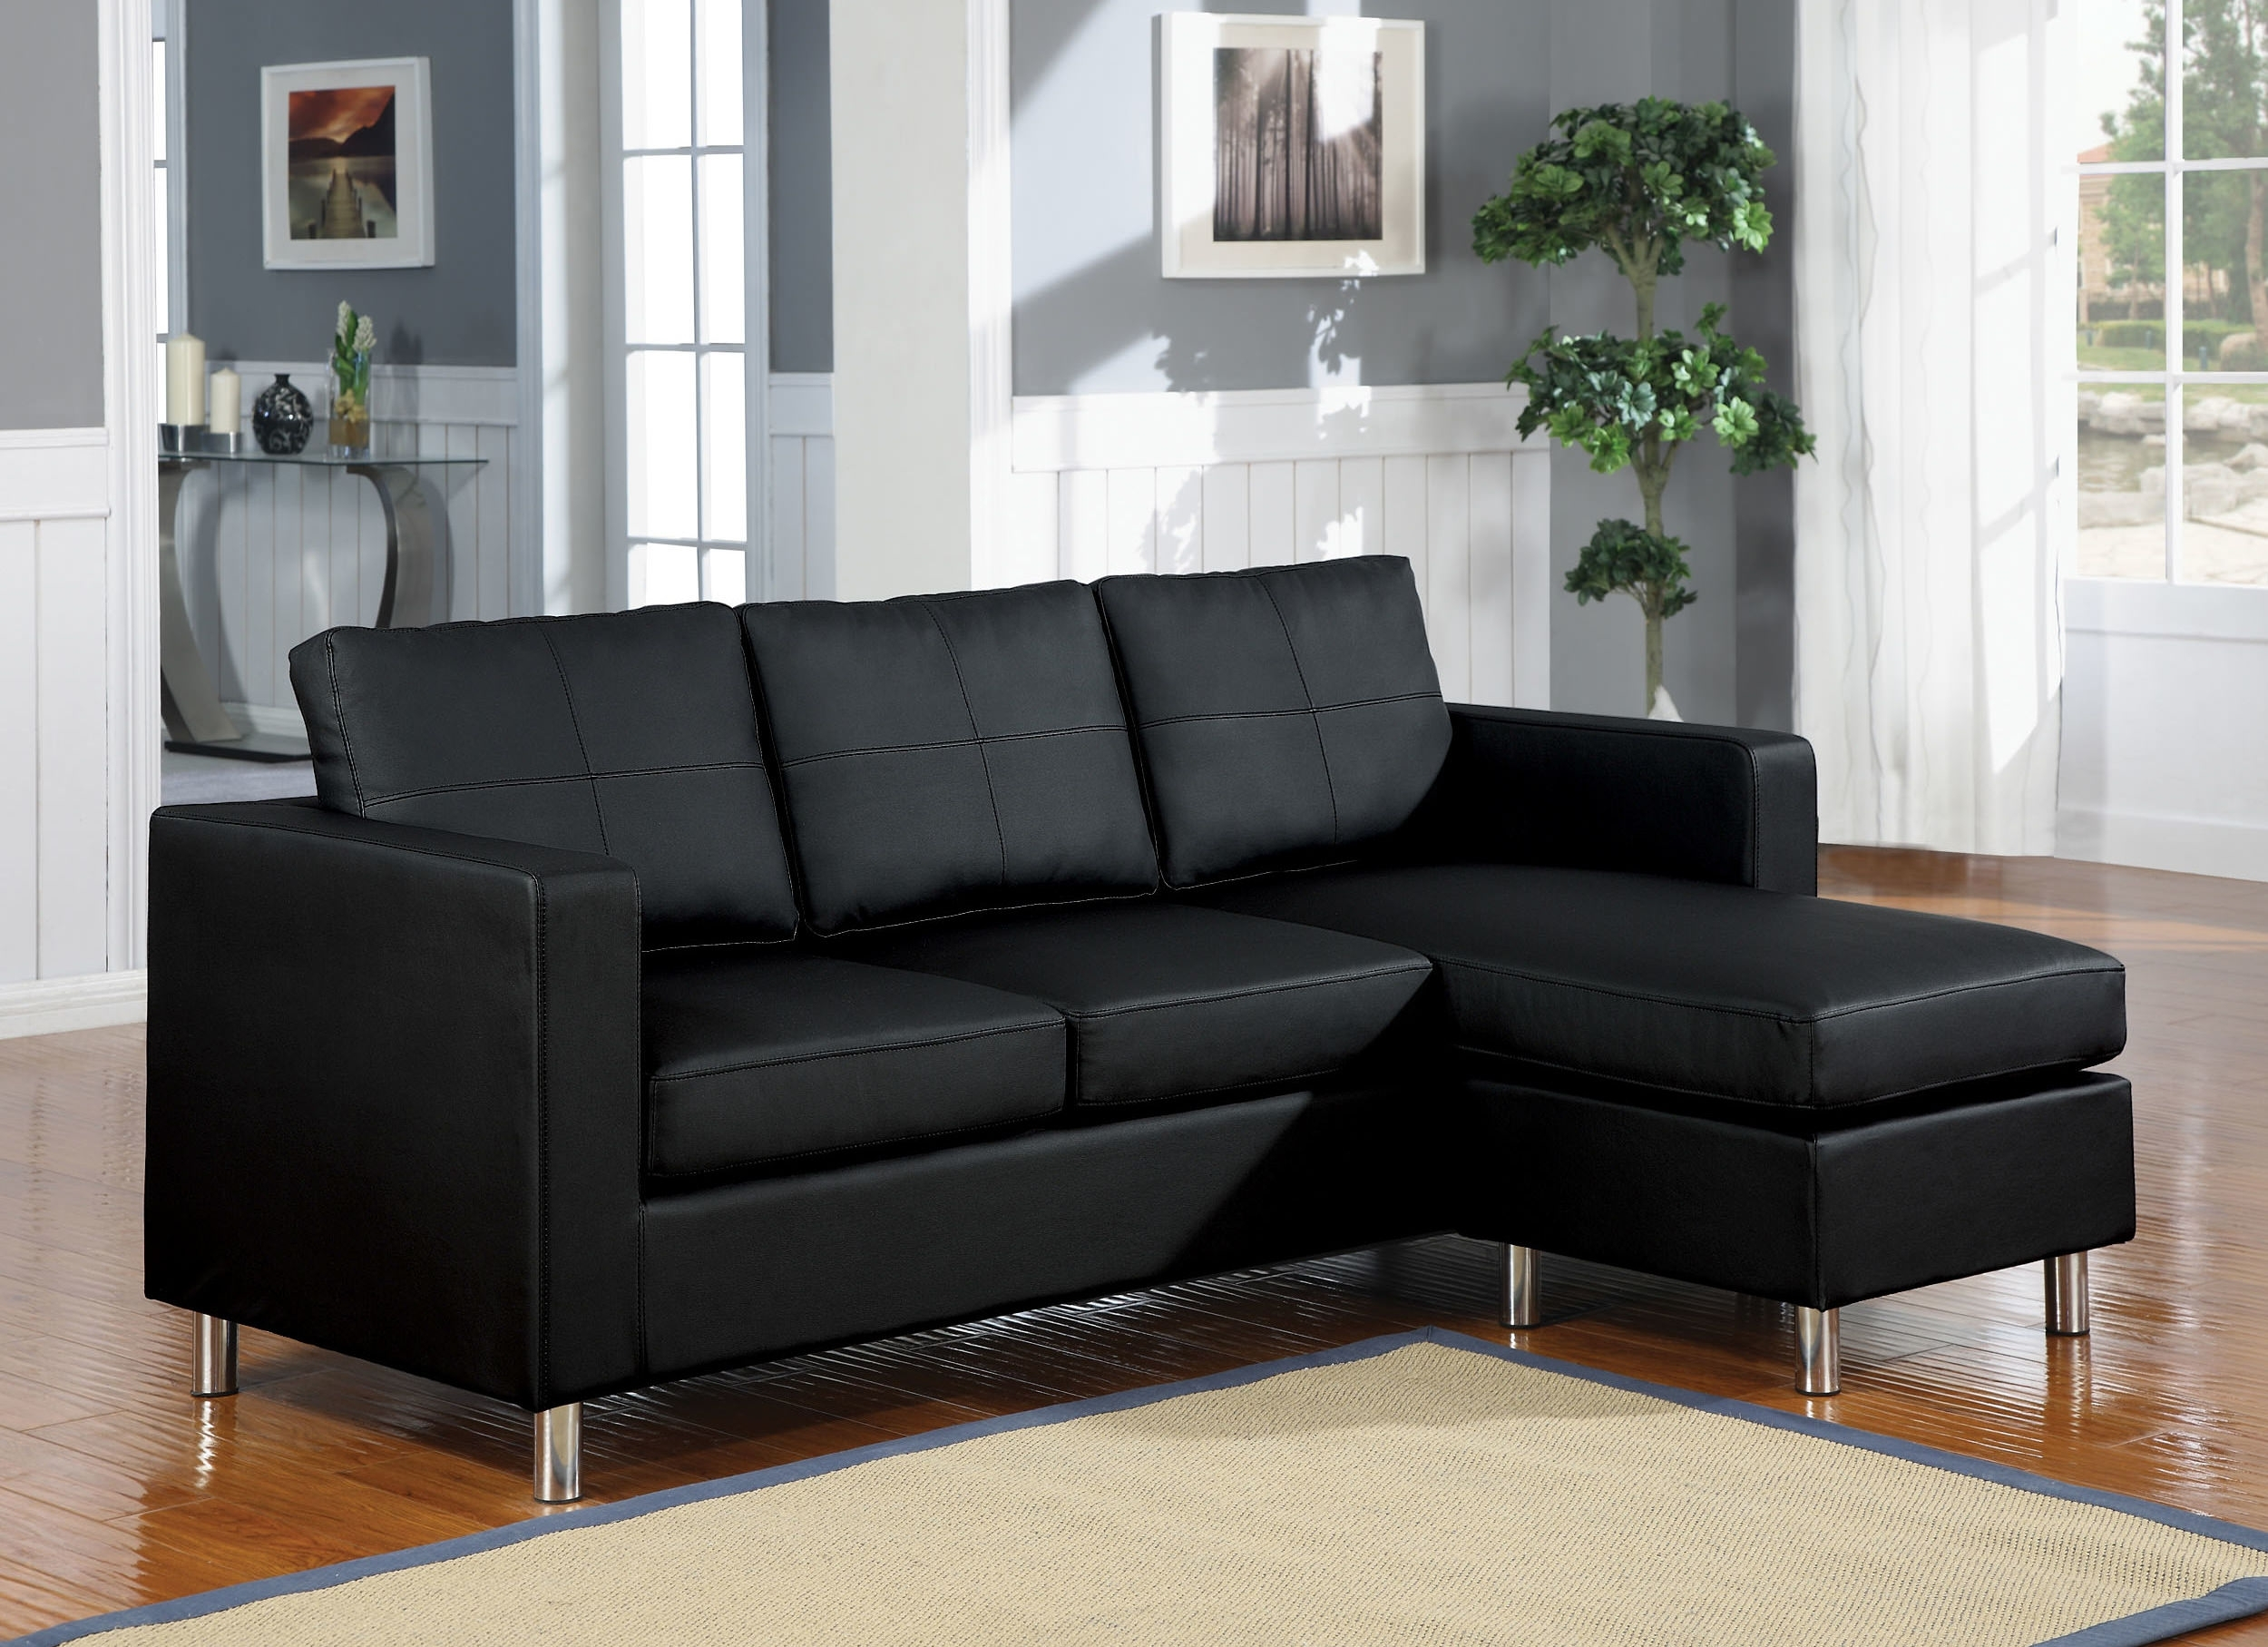 Modular Sectional Sofas Designs Ideas Plans Model Design Kemen Sofa Regarding Black Leather Sectionals With Ottoman (Image 6 of 10)